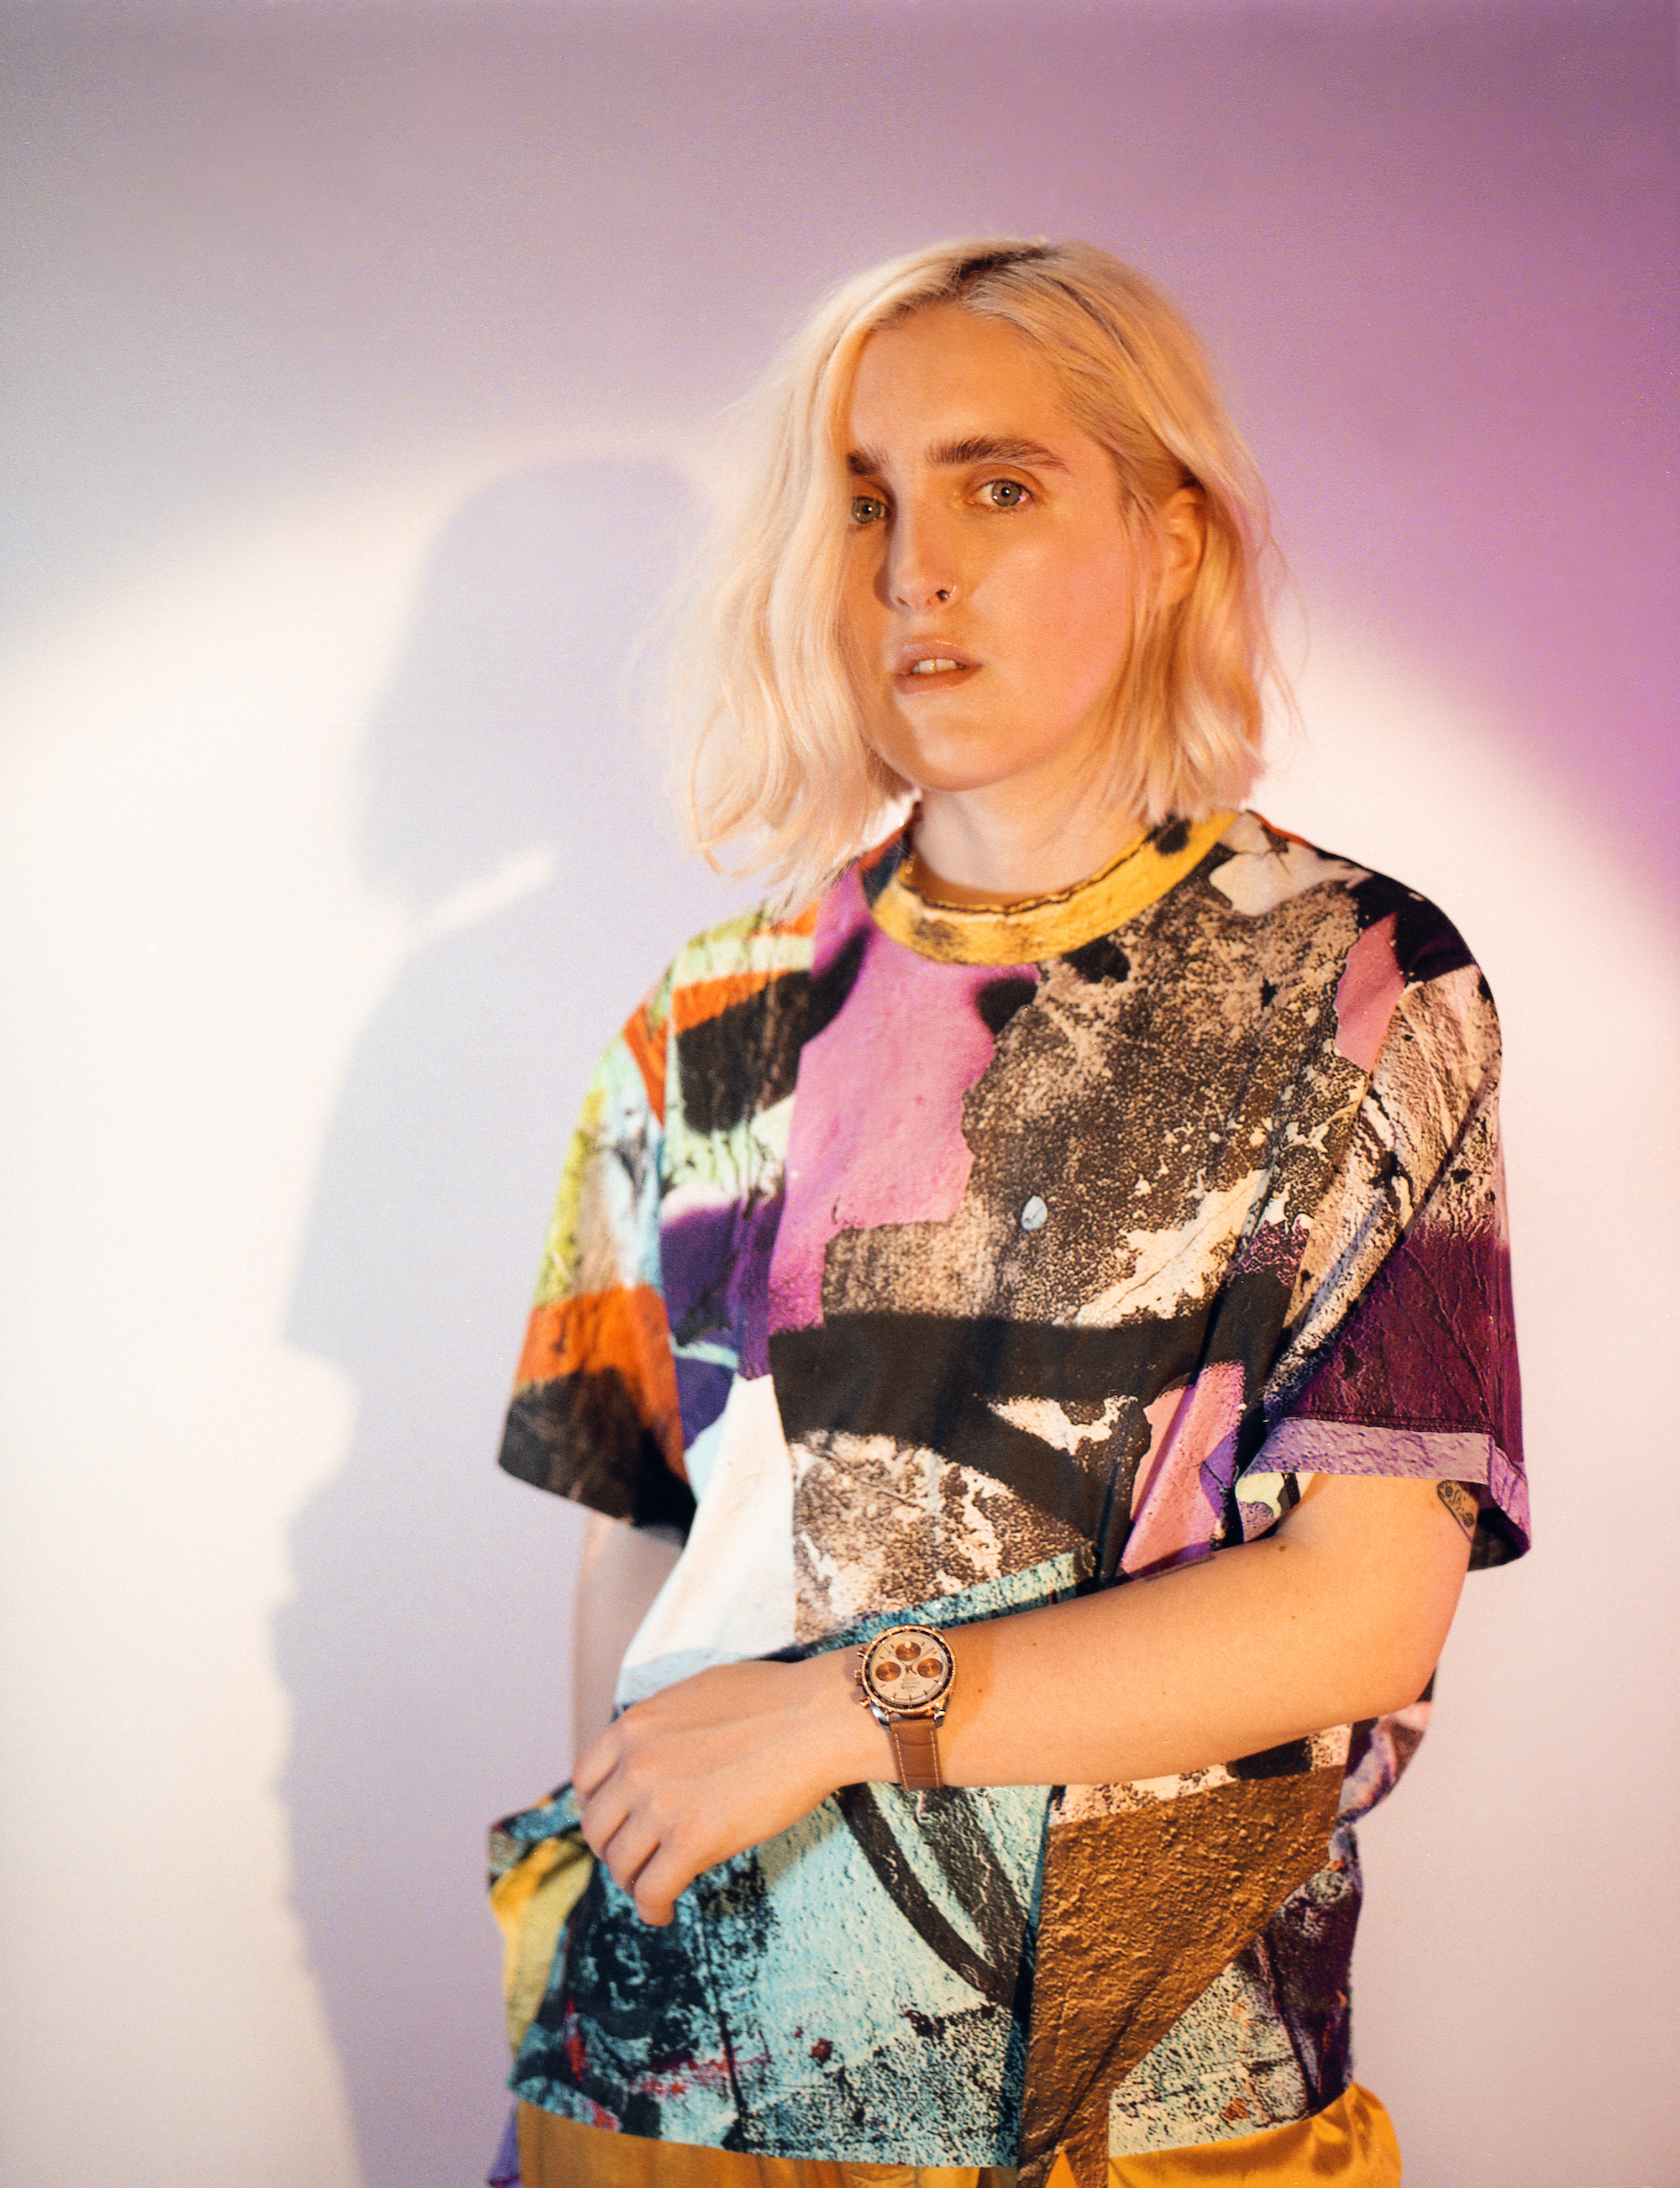 Singer Shura in the Omega Zine in the Summer 19 issue of Wonderland t-shirt